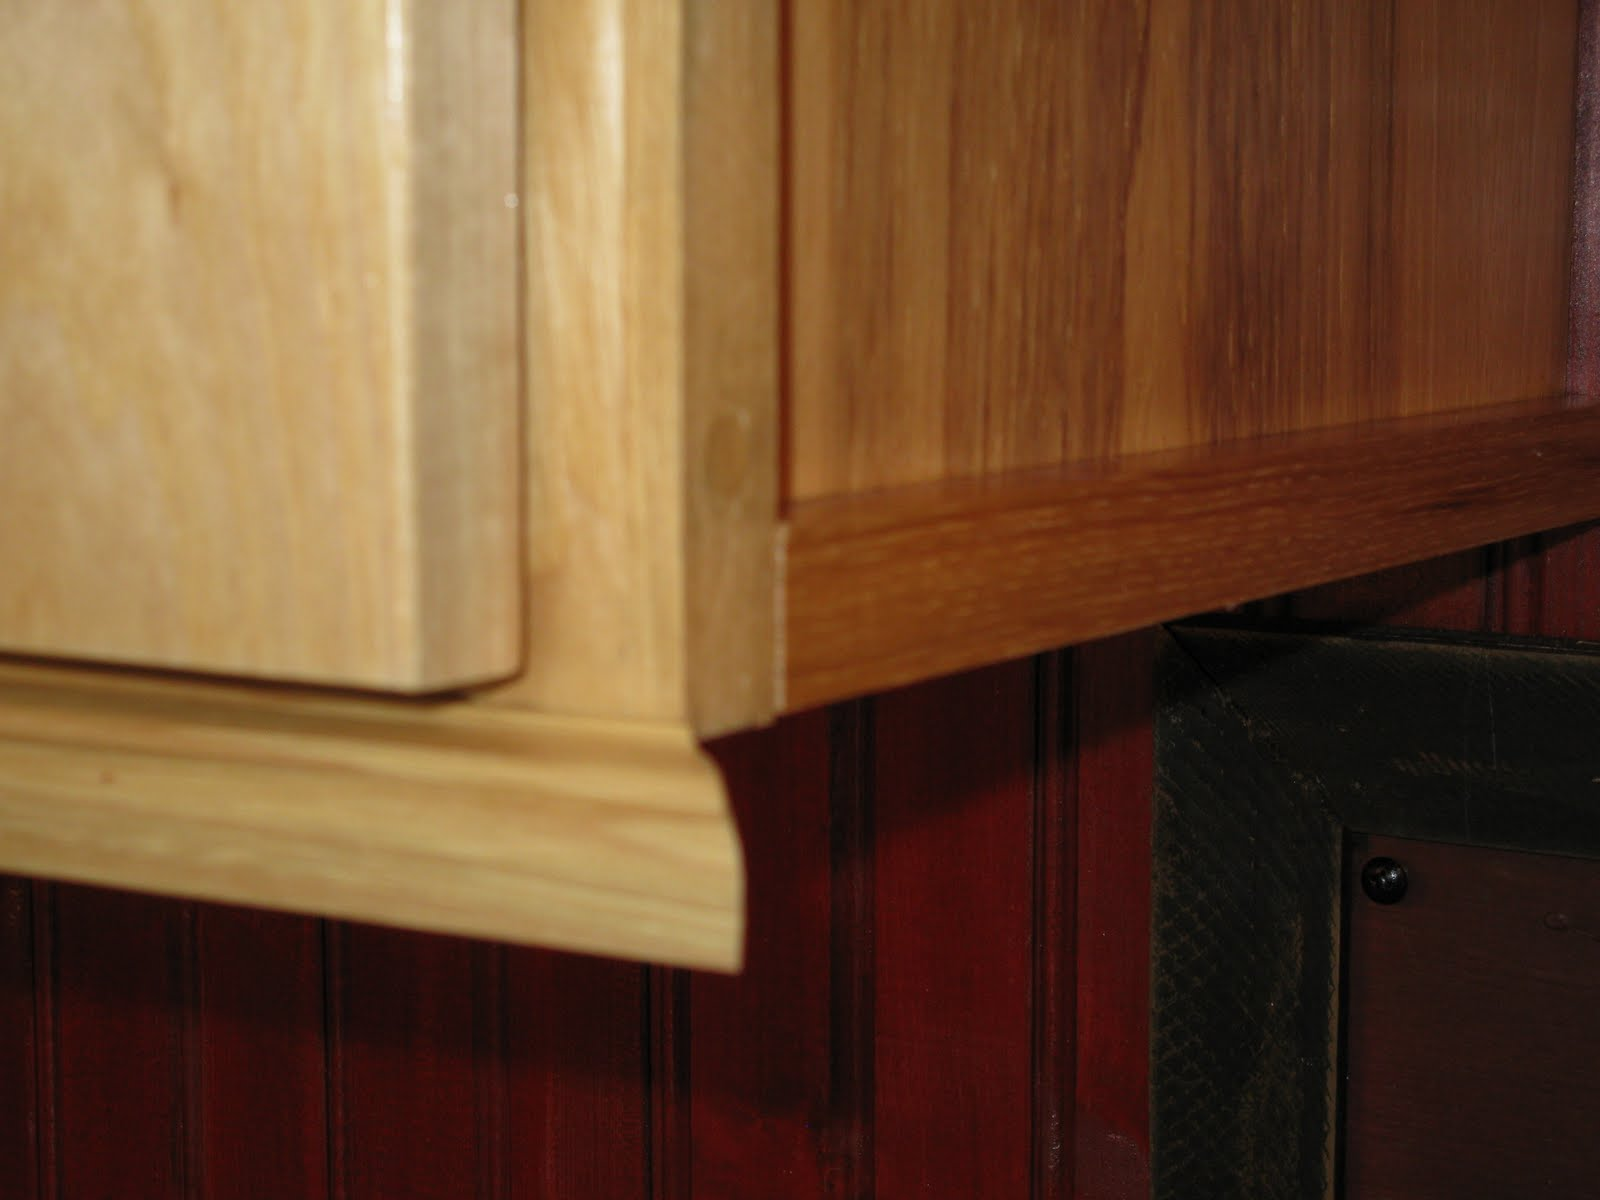 cabinet under lighting. installing molding for under cabinet lighting t